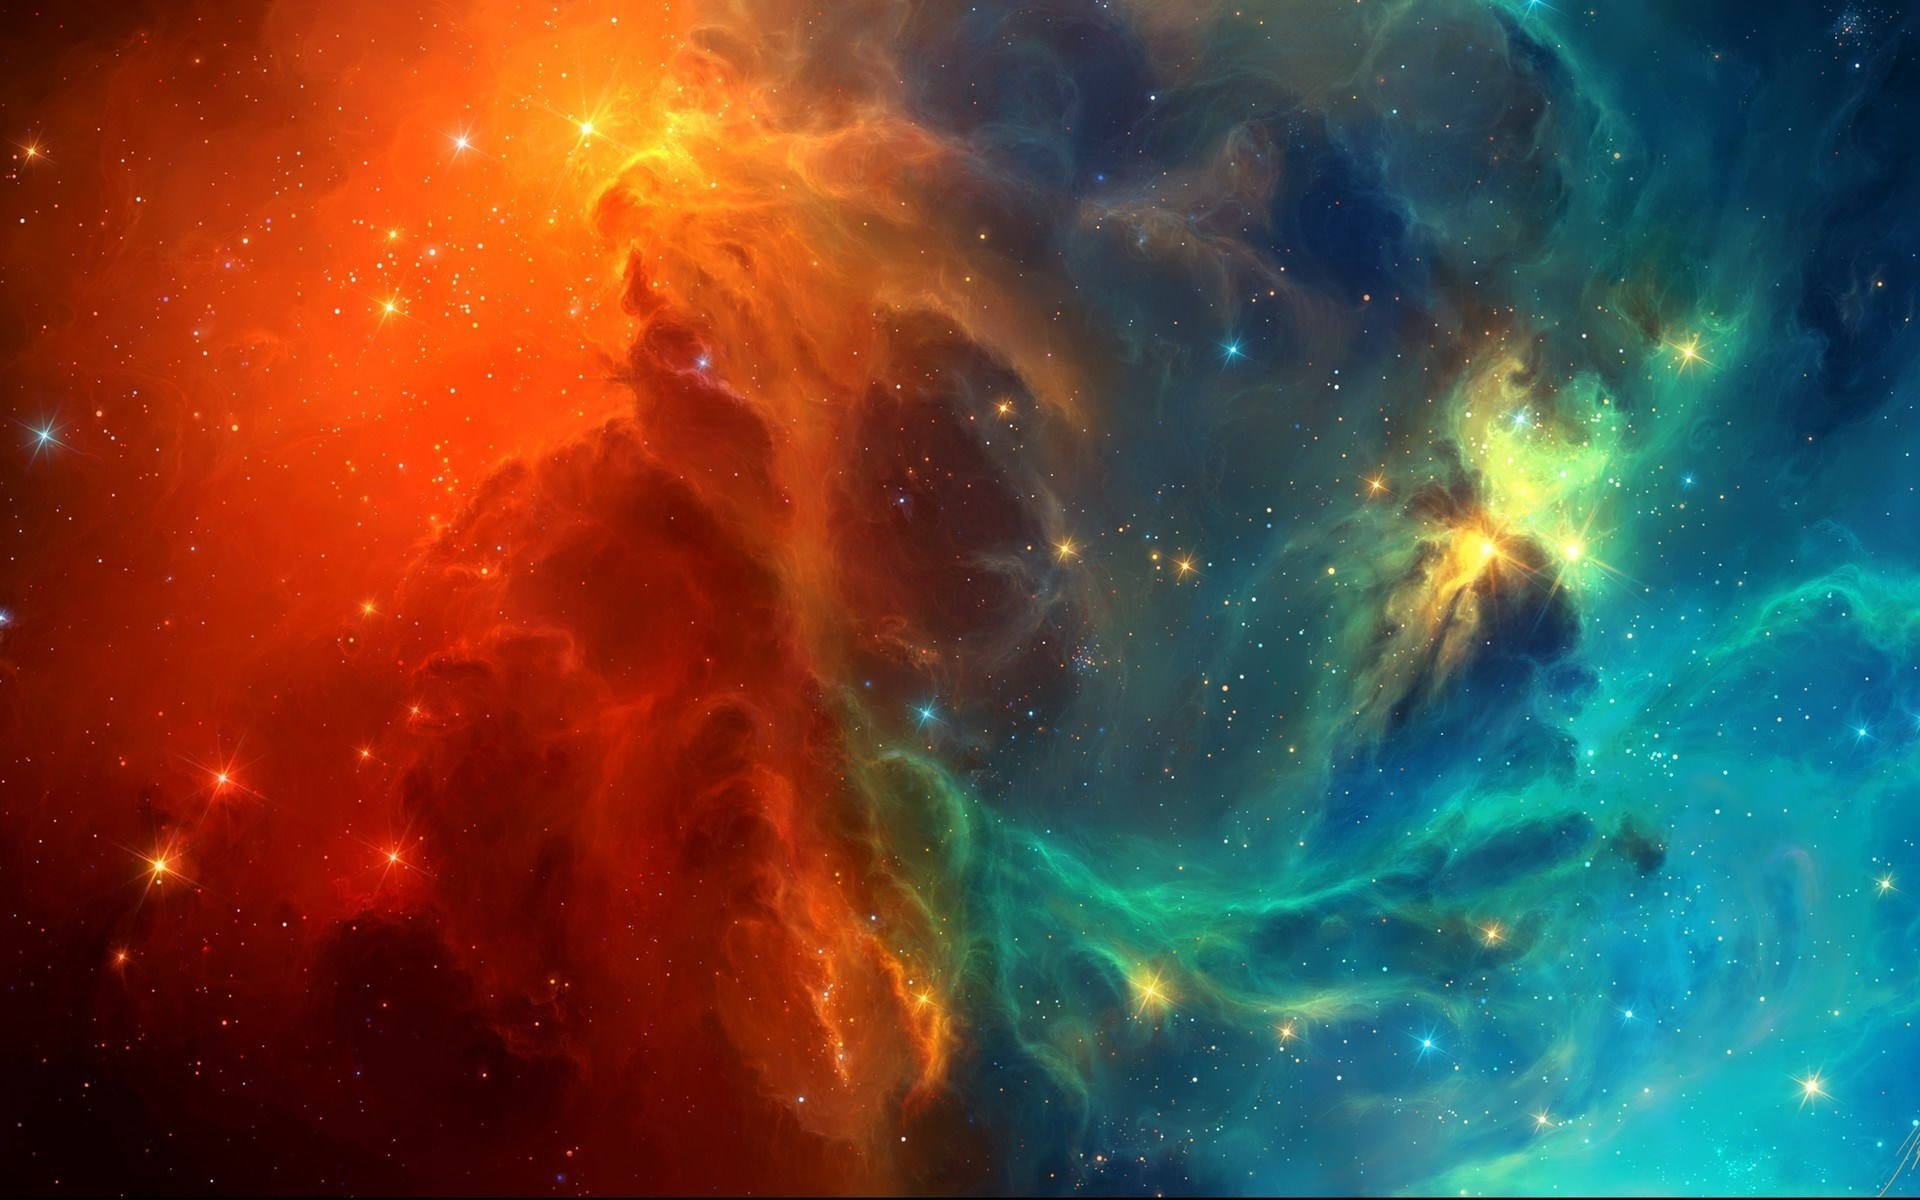 Space Nebula Hd Wallpaper Freehdwalls